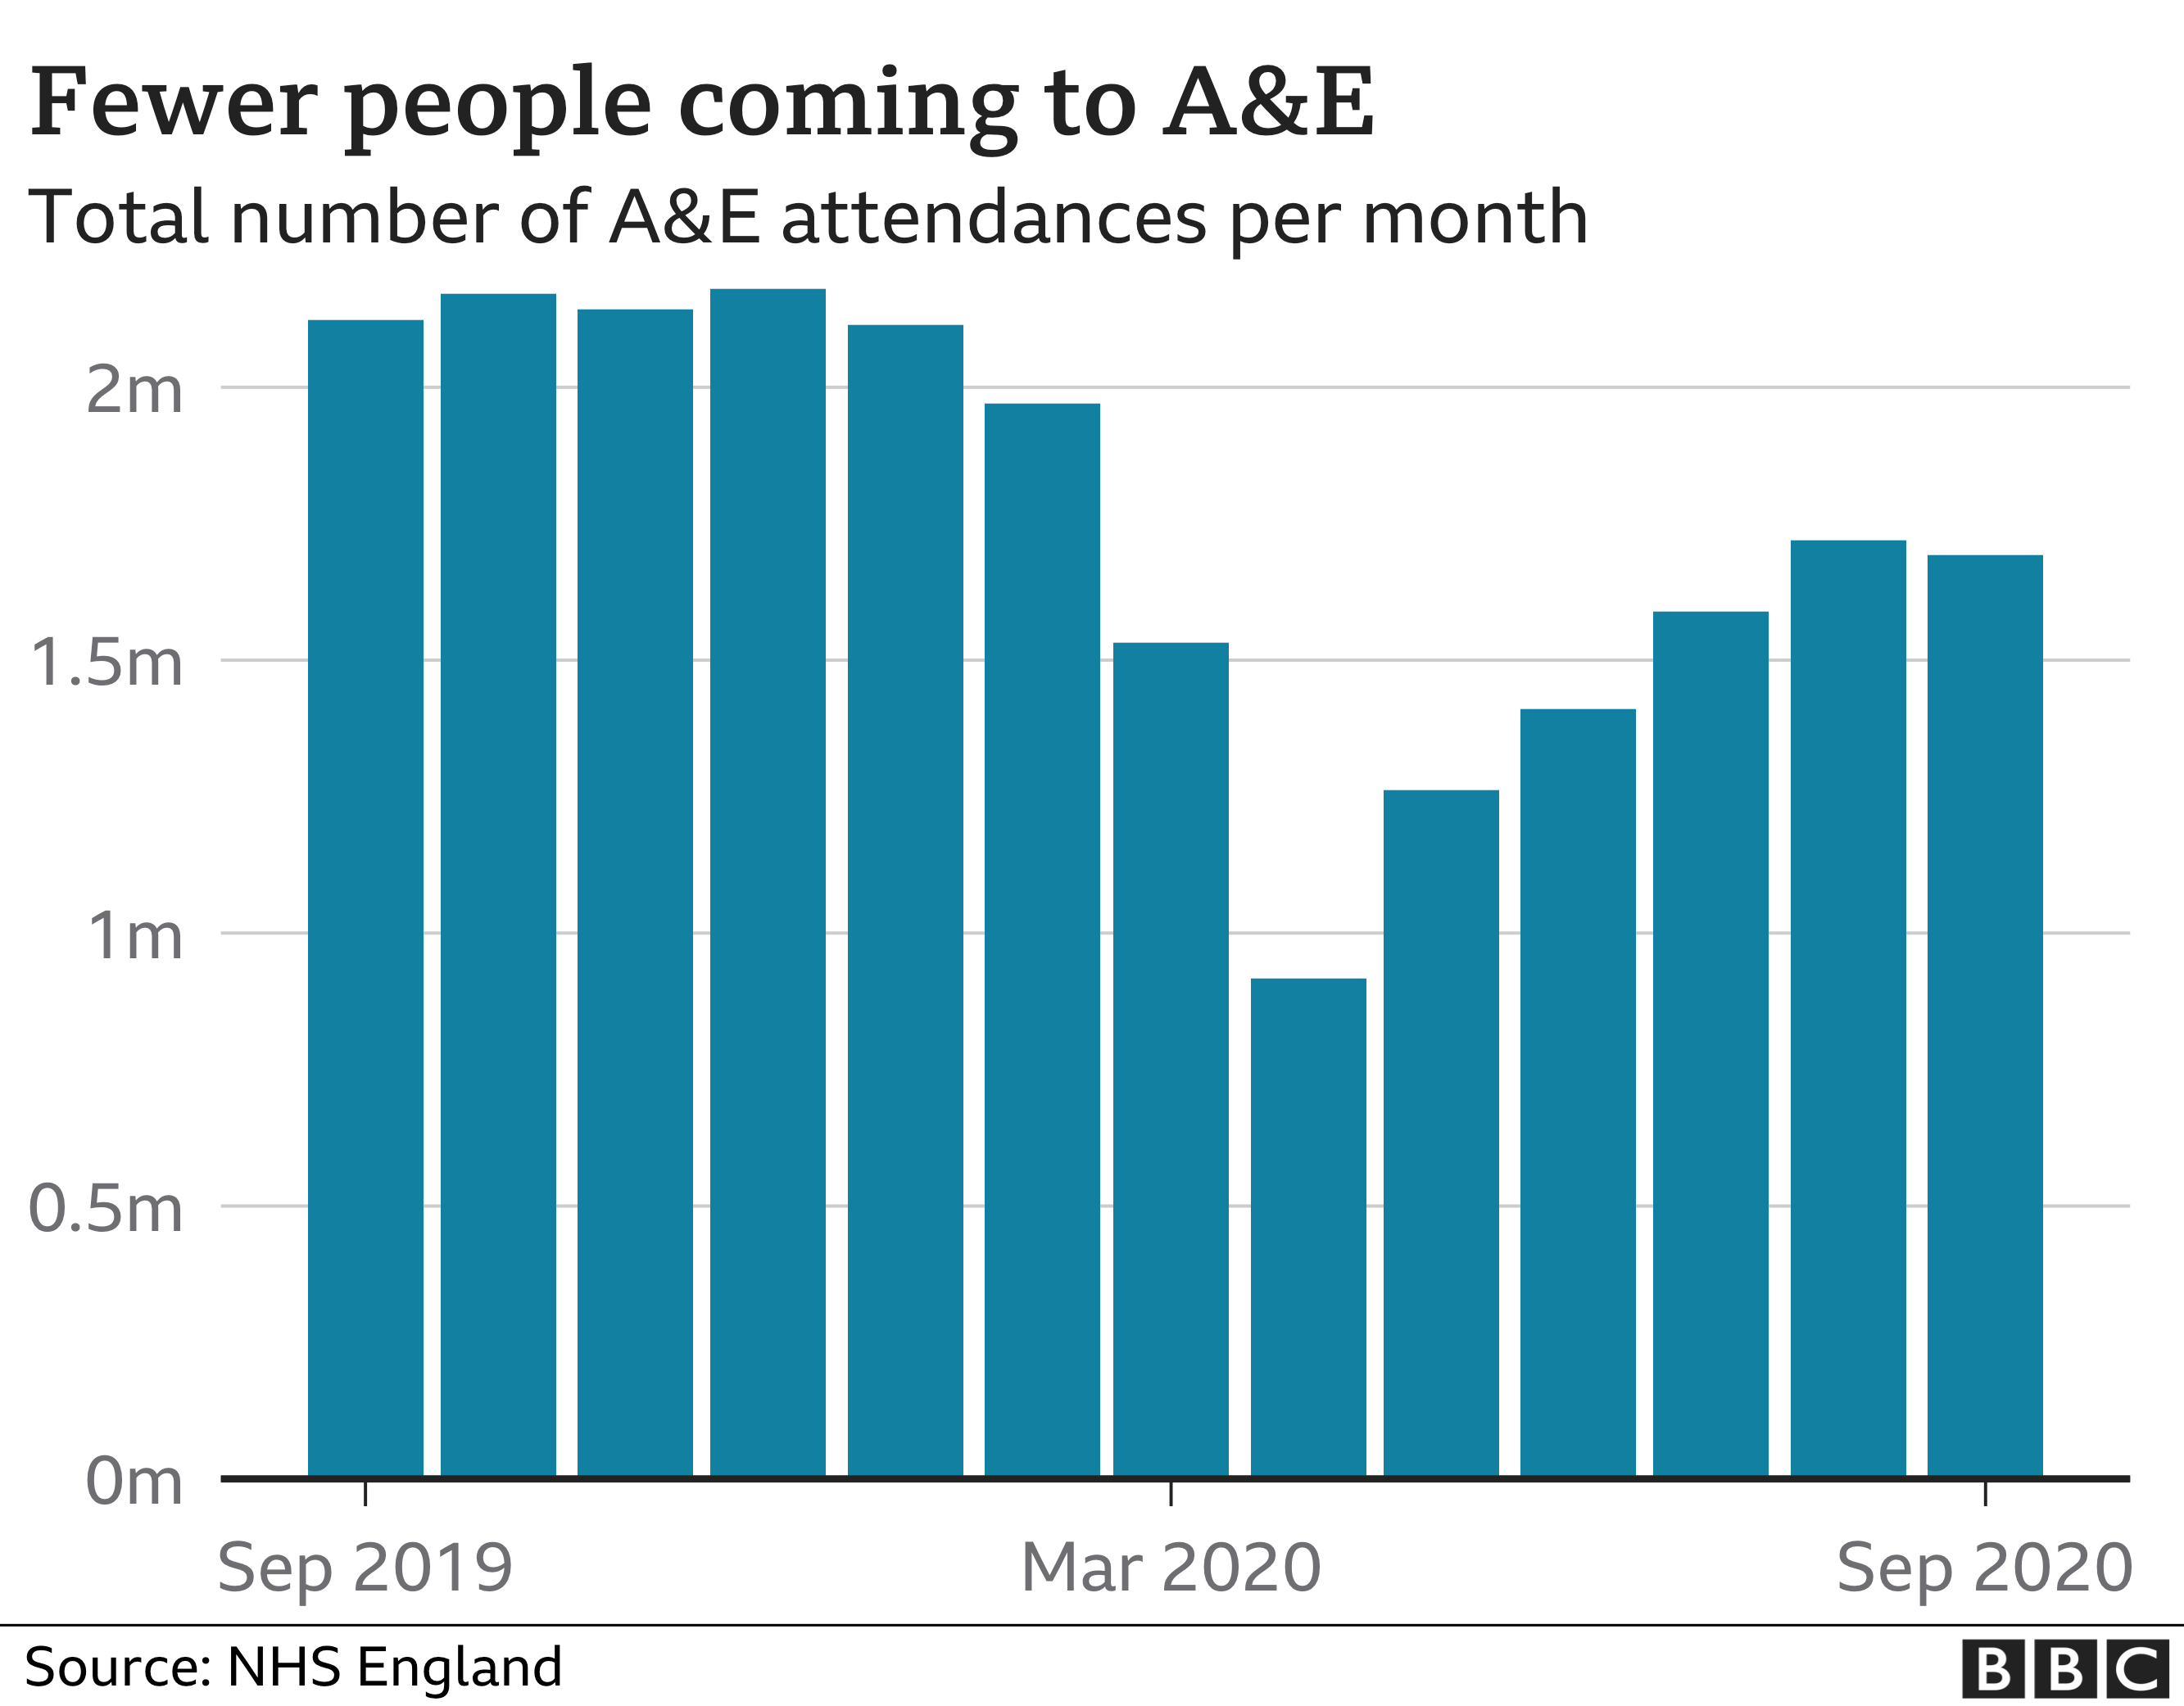 Fewer people coming to A&E